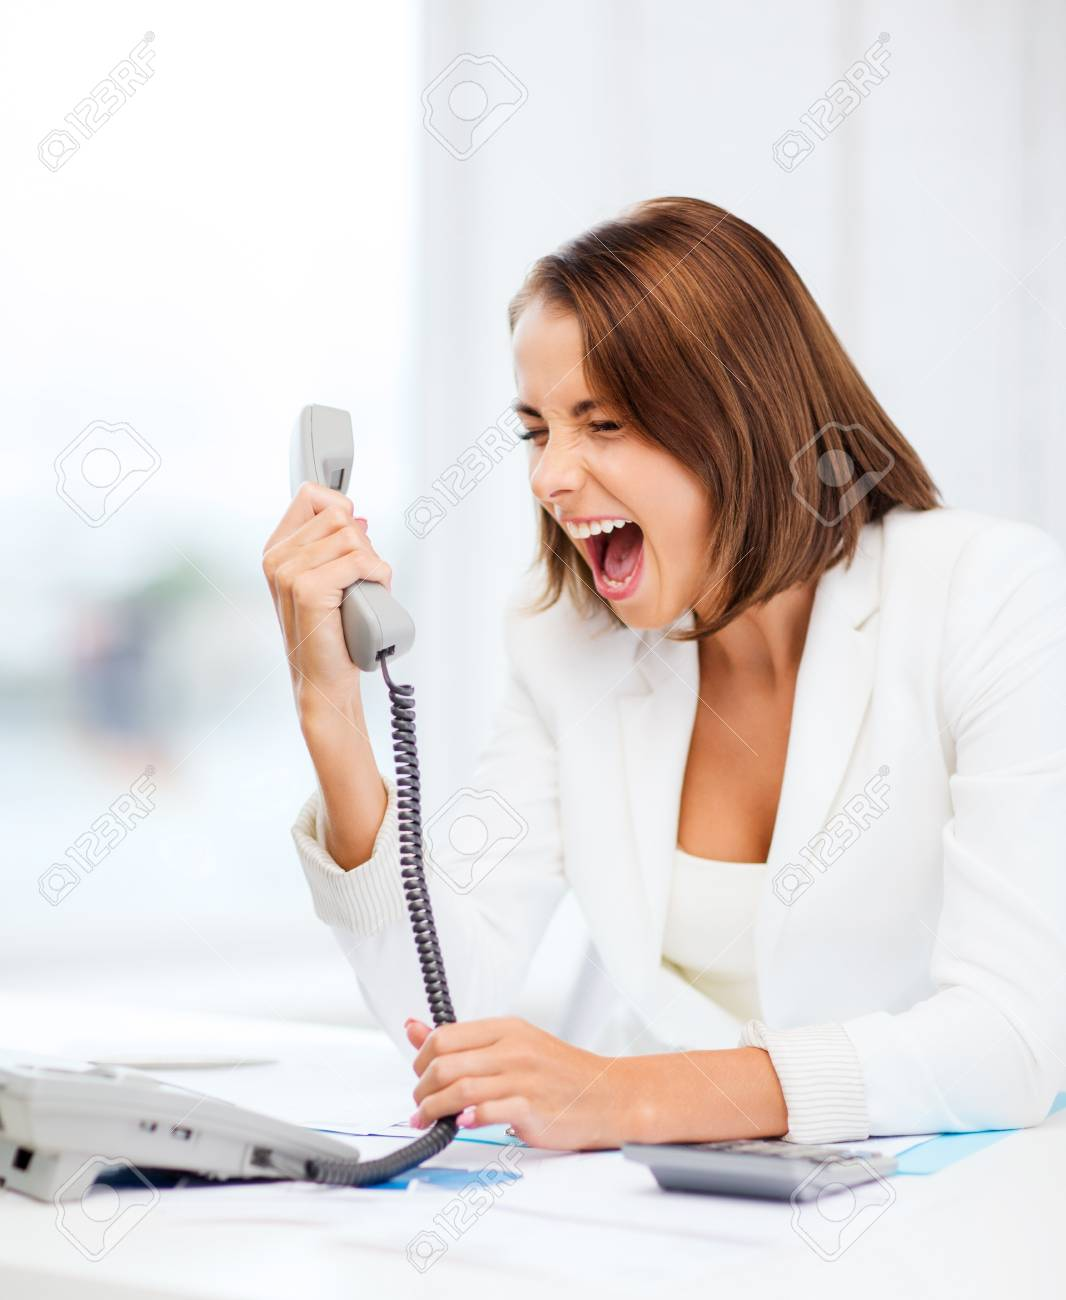 business concept - woman shouting into phone in office Stock Photo - 21681046